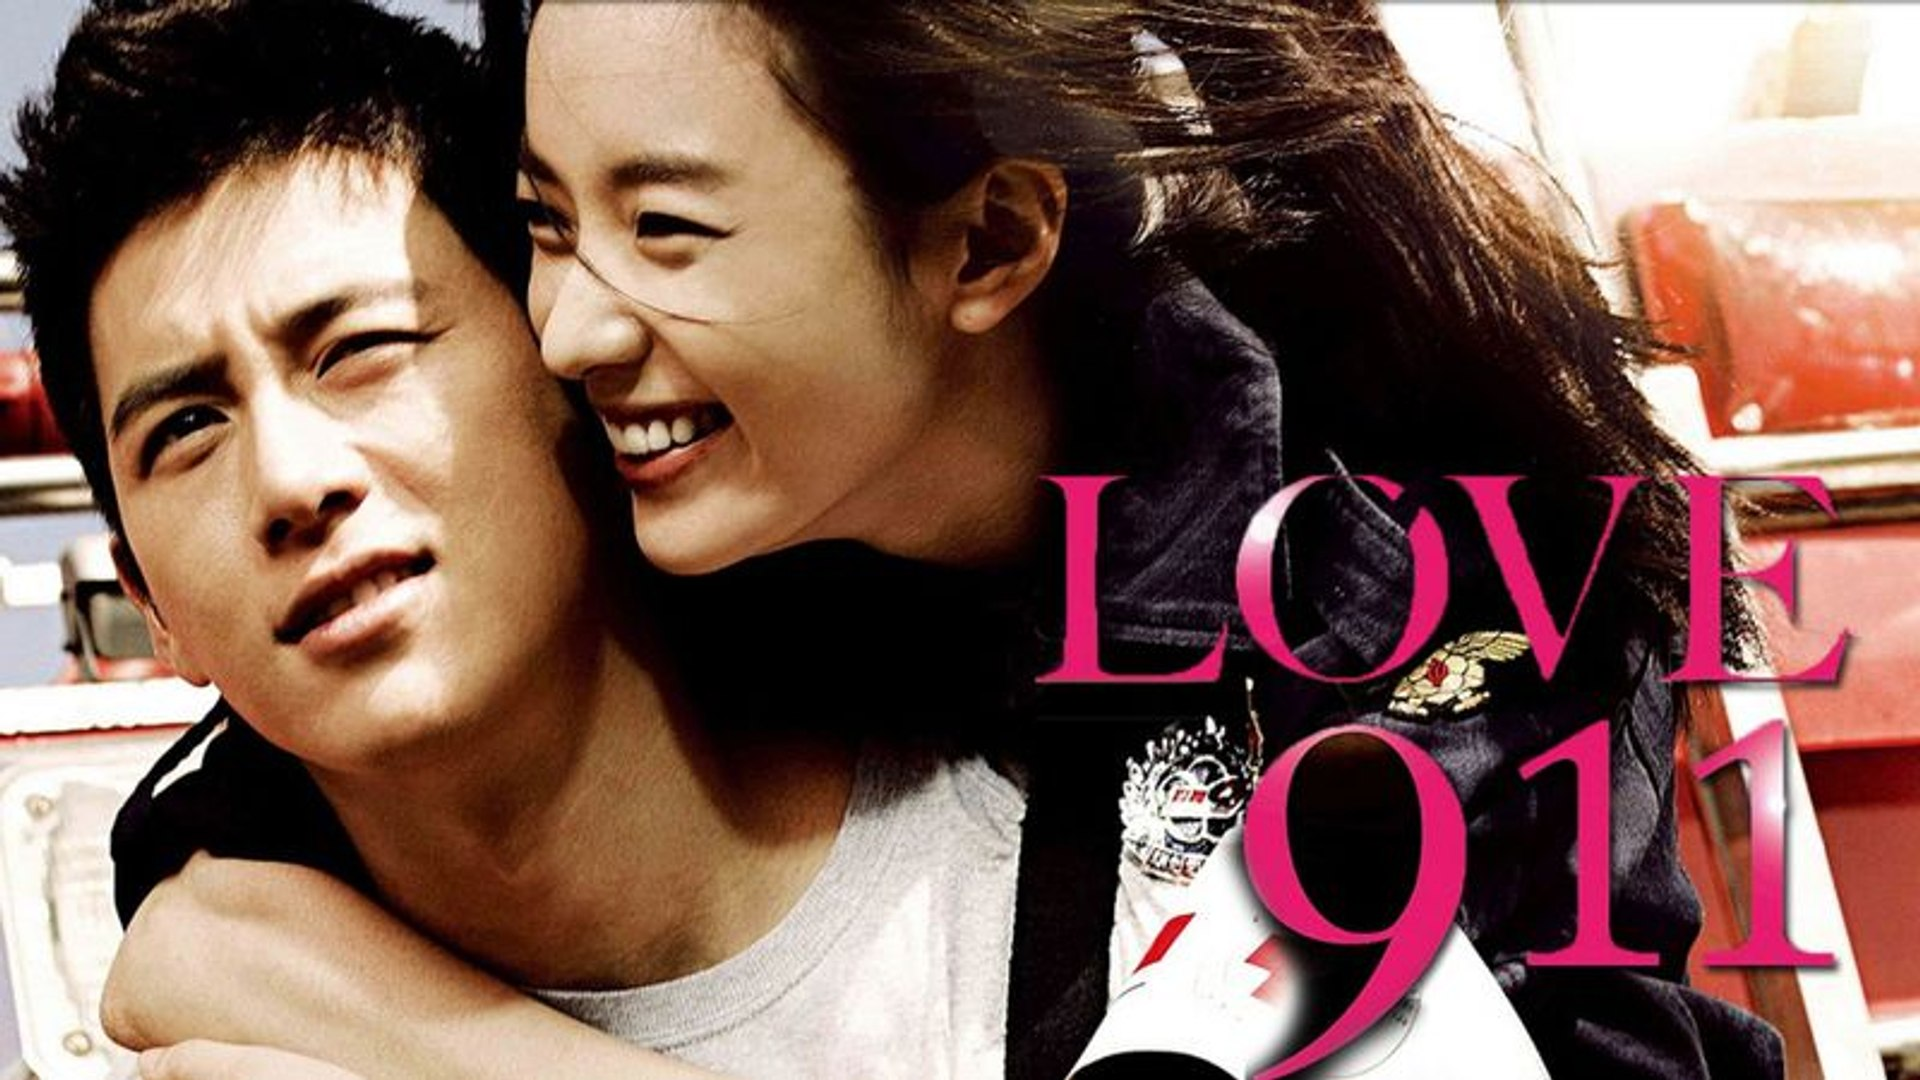 love 911 full movie eng sub free download